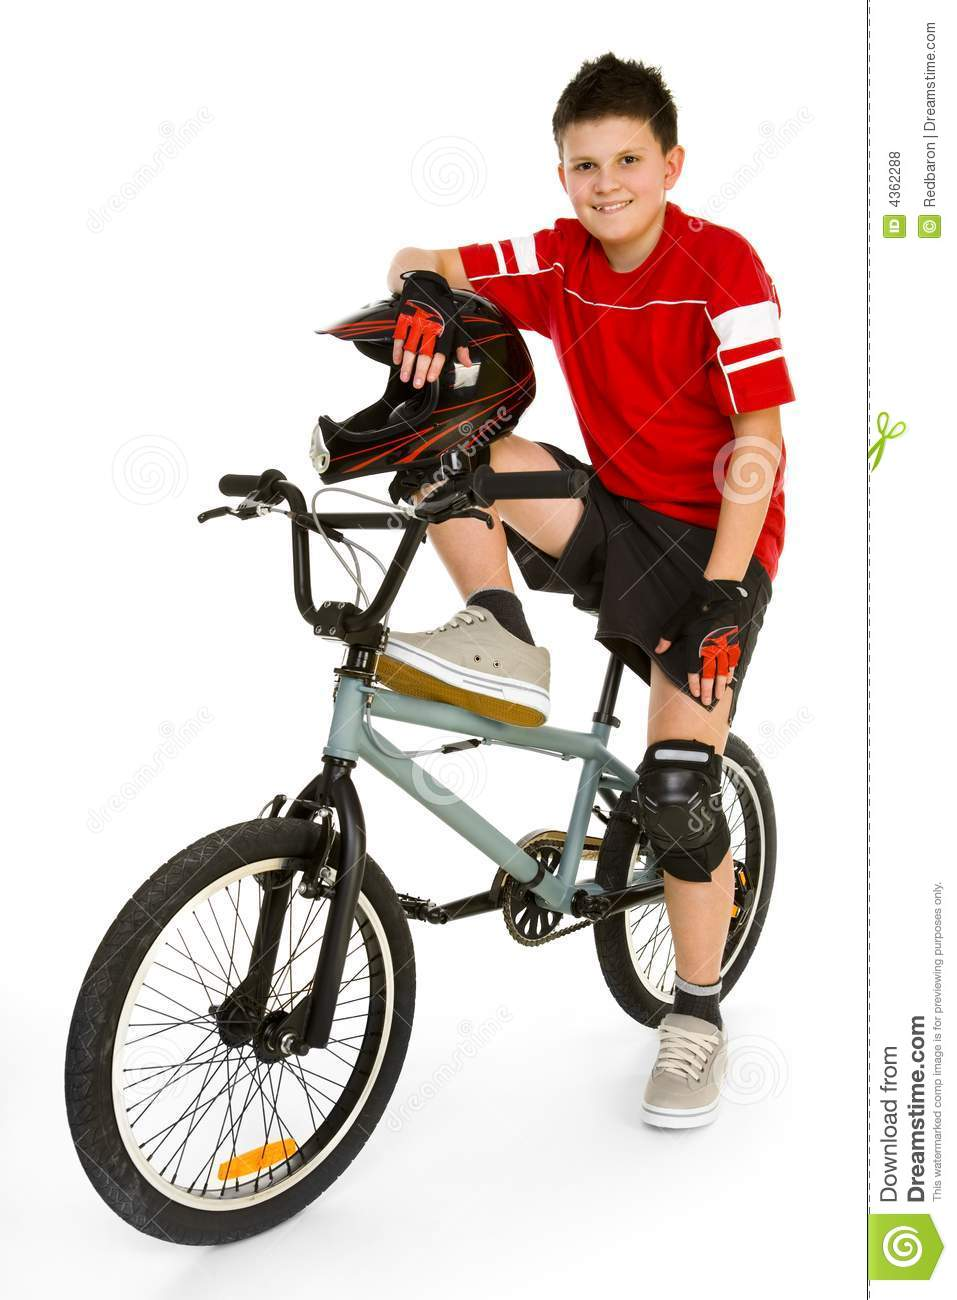 Young Happy Biker Sitting On Bmx And Looking At Camera  Isolated On